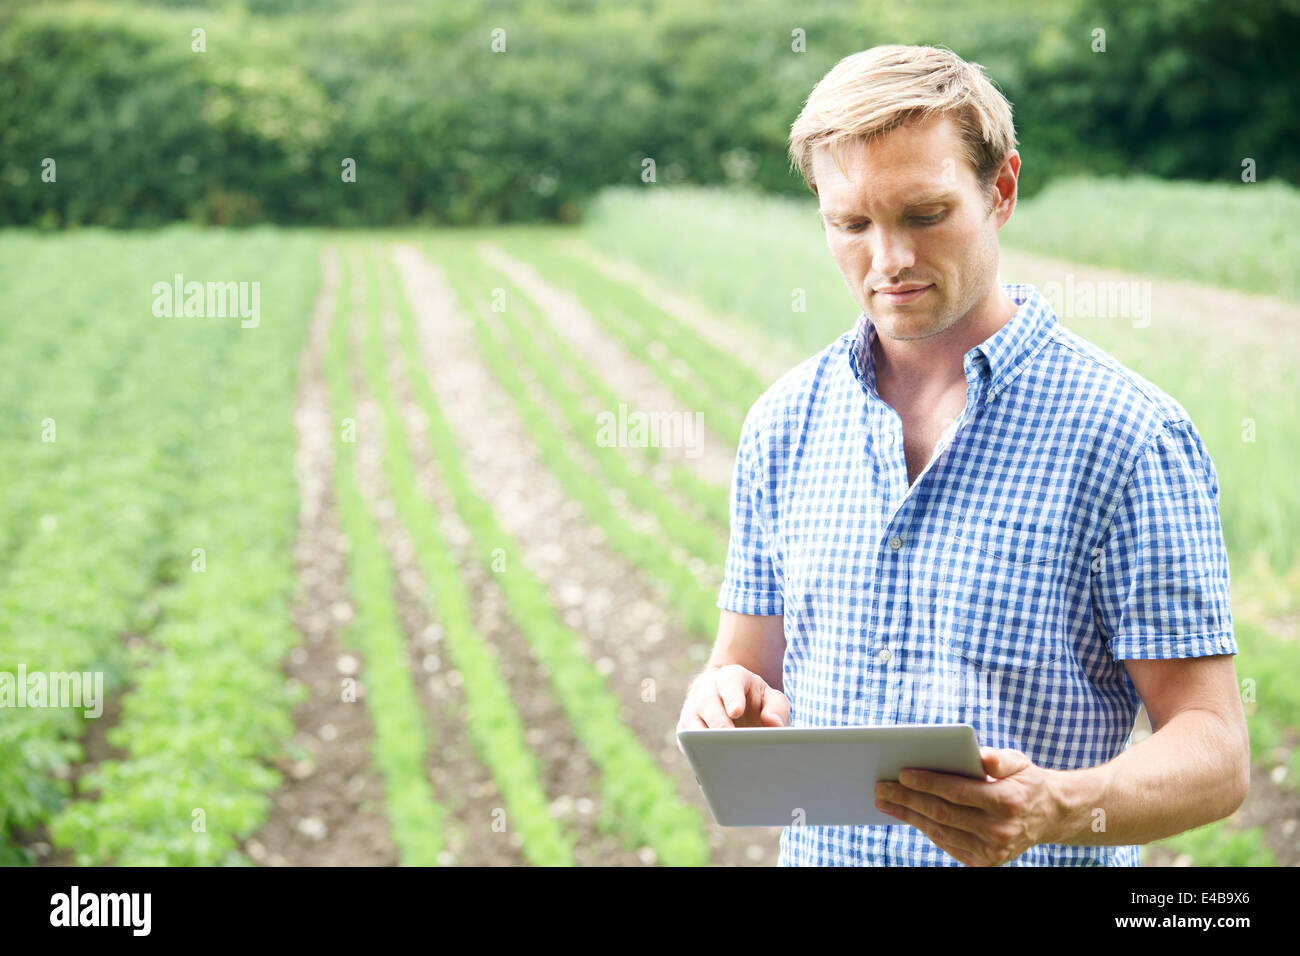 Farmer In Field Of Organic Crops Using Digital Tablet - Stock Image